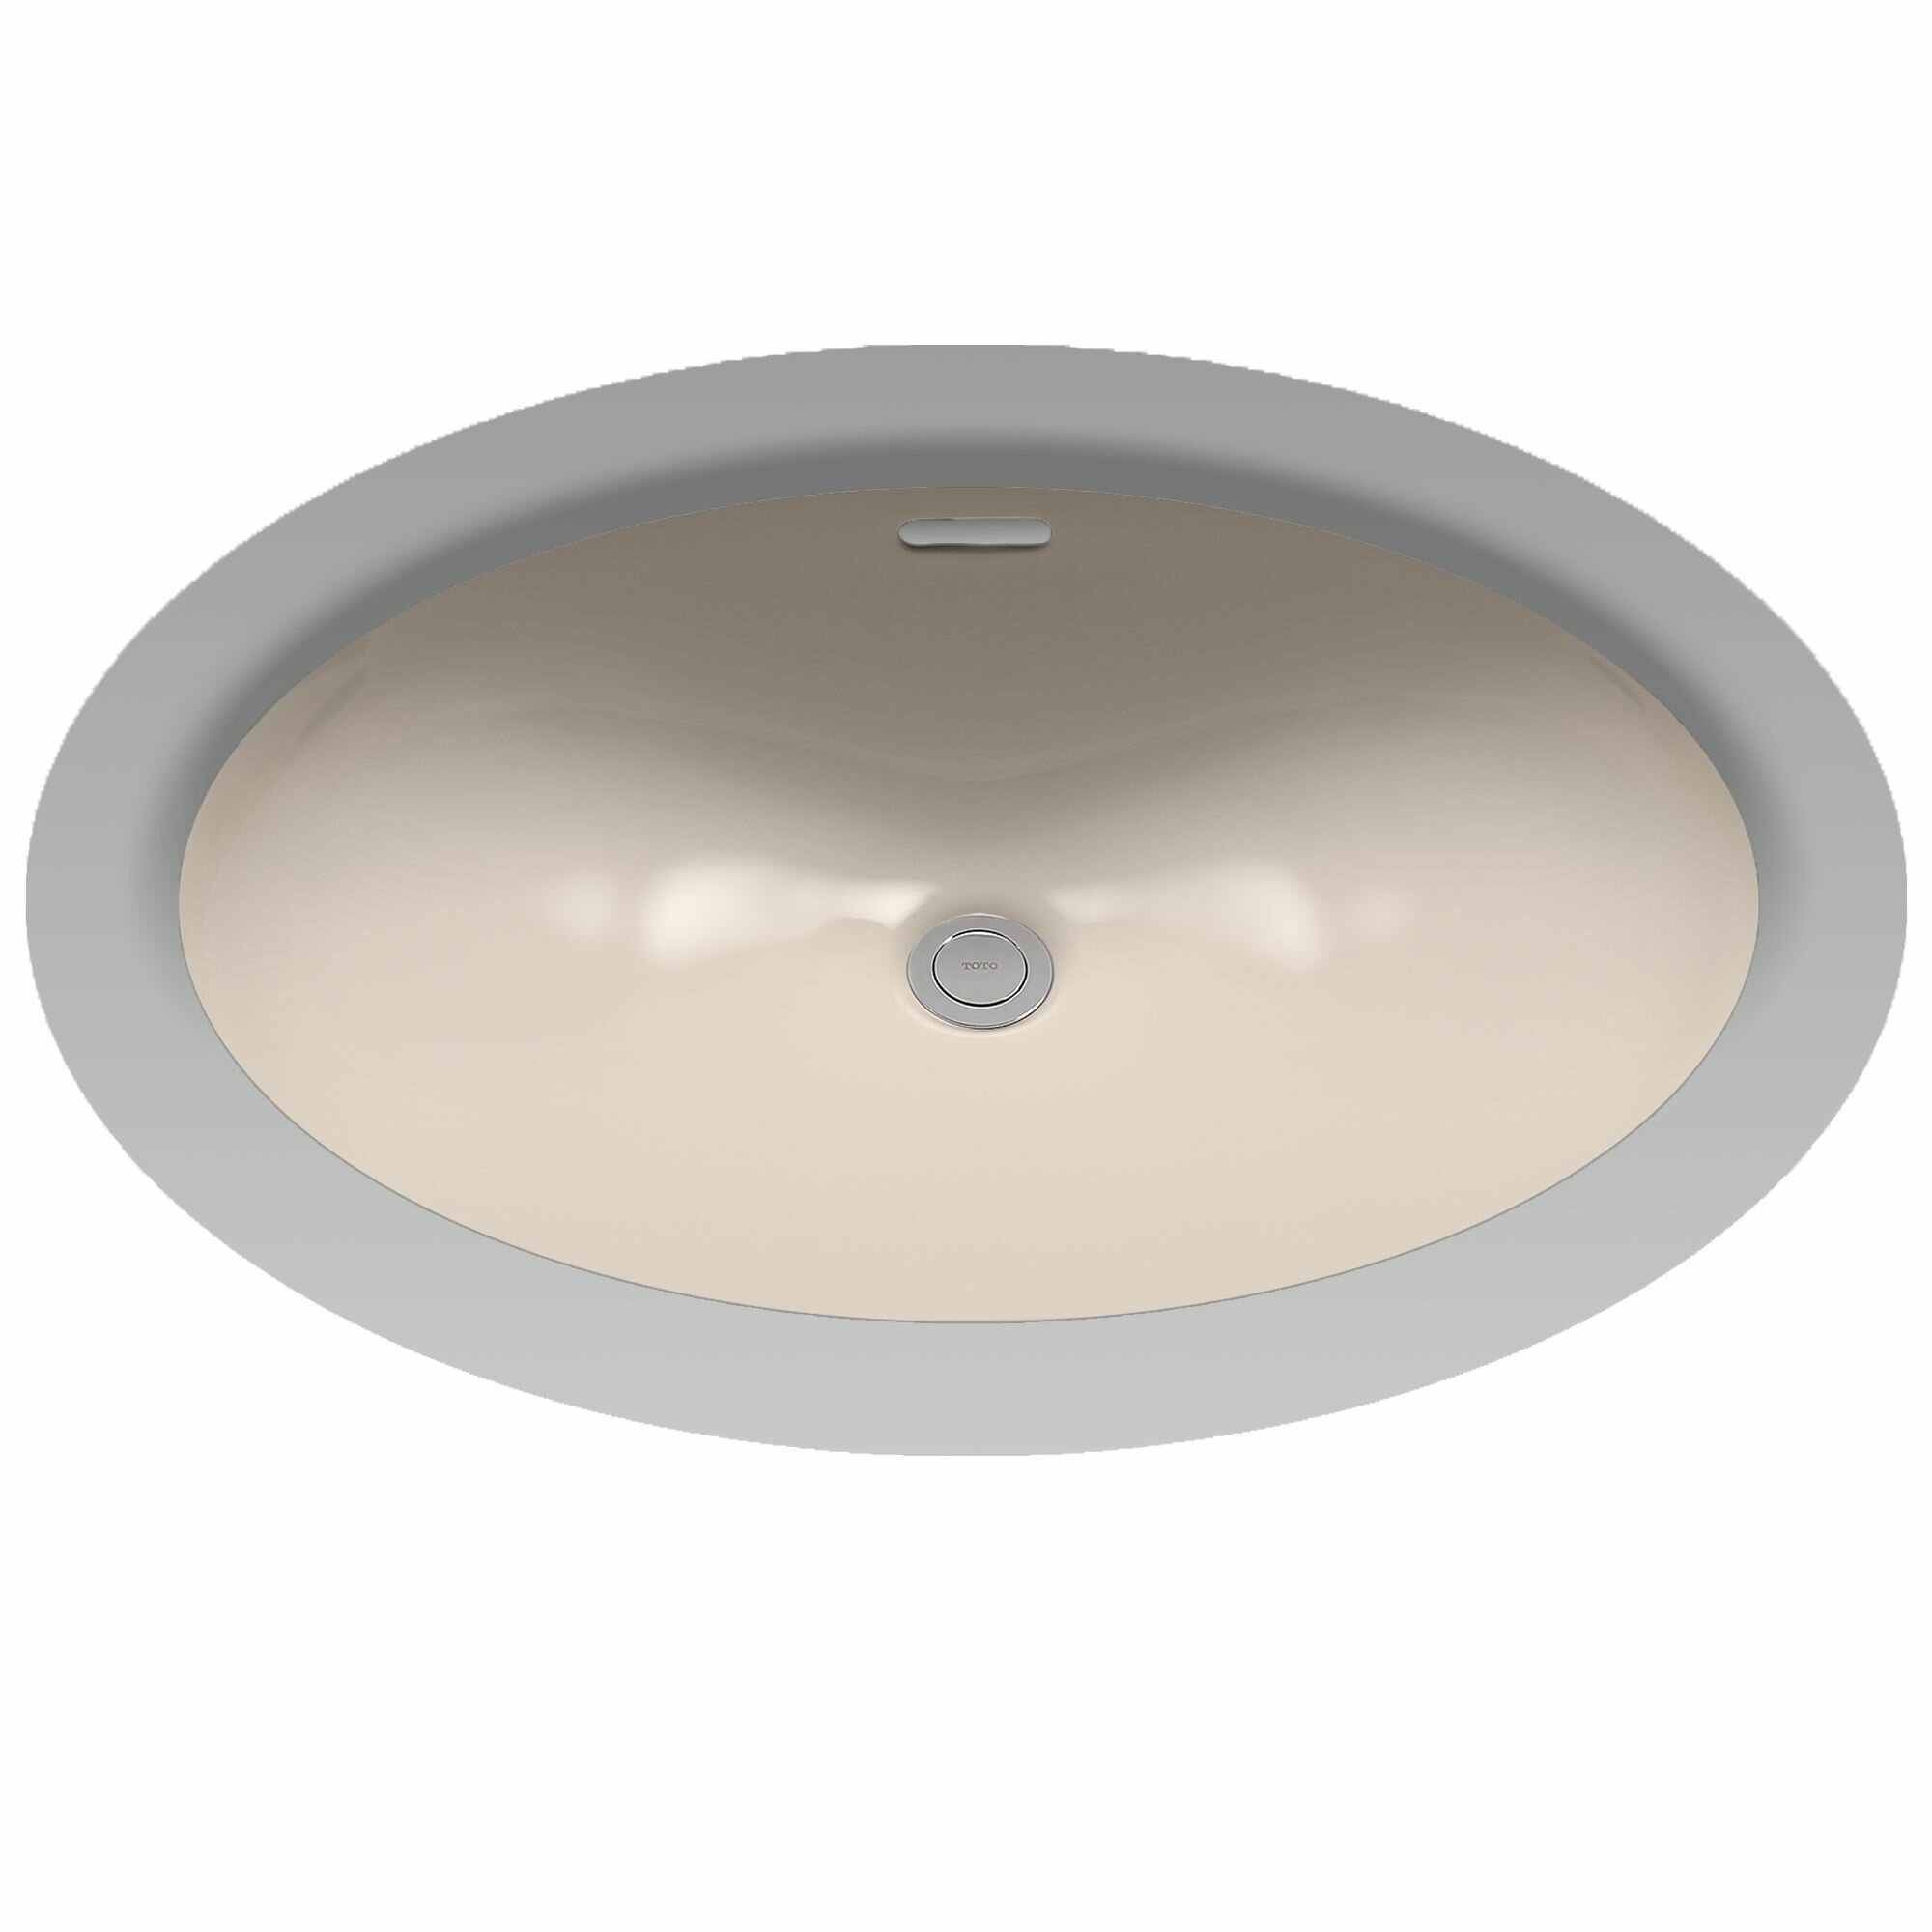 Toto Augusta Decorative Ceramic Oval Undermount Bathroom Sink With Overflow Reviews Wayfair